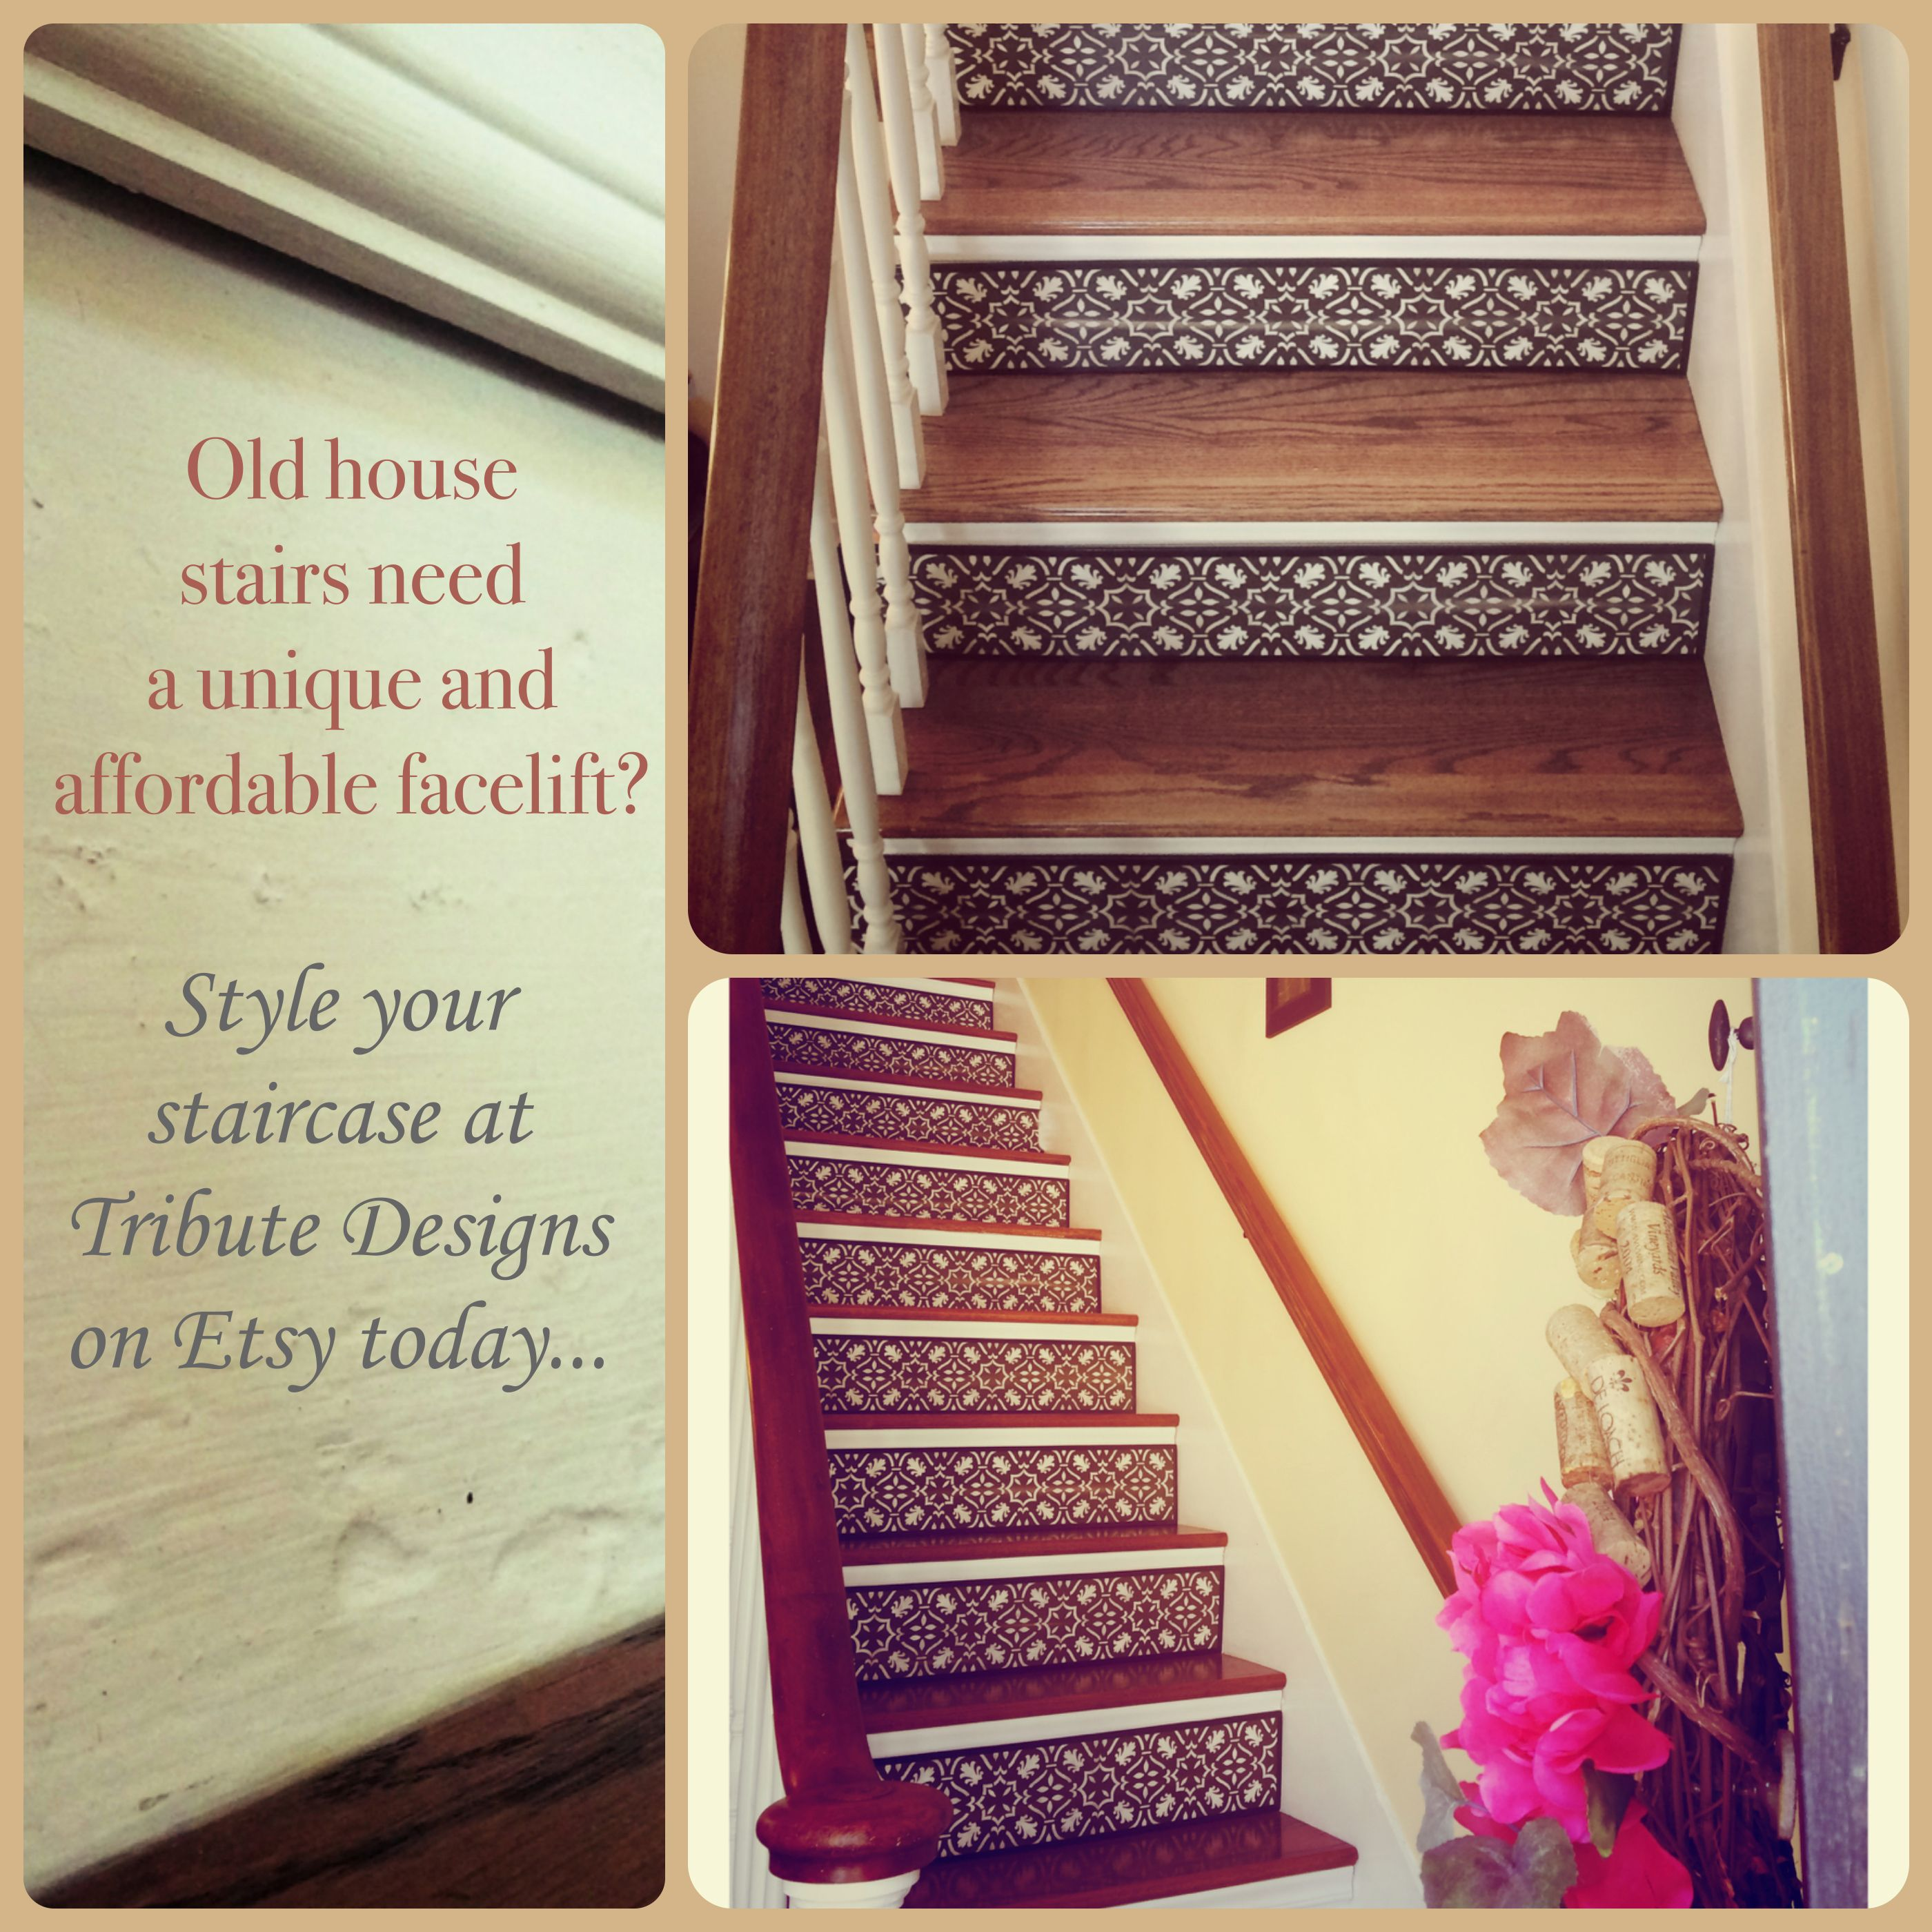 Superior Looking For A Unique And Affordable Facelift For Your Old House Stairs?  Tribute Designs Creates Stair Riser Art In Custom Sizes, Patterns And  Colors.